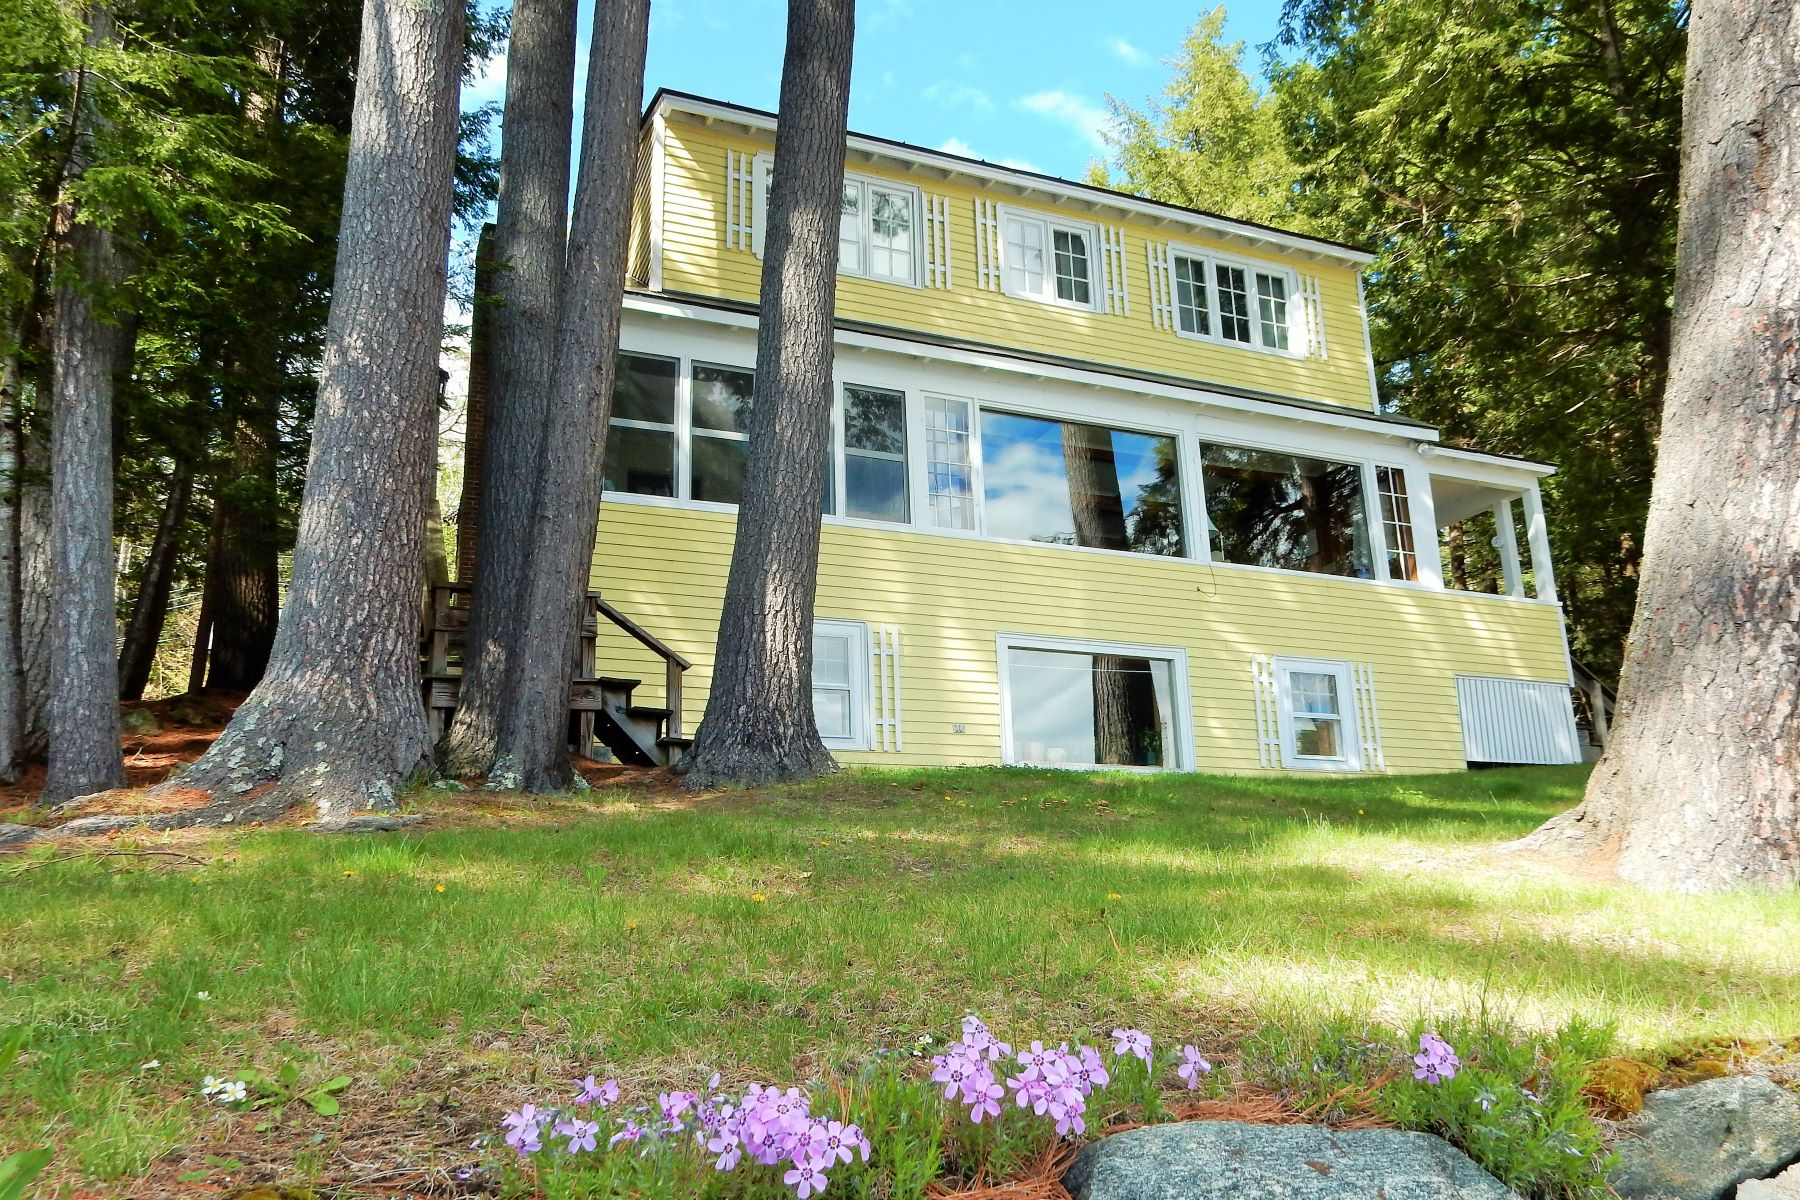 Villa per Vendita alle ore Mascoma Lake frontage, dock, water views 236 Shaker Blvd Enfield, New Hampshire, 03748 Stati Uniti